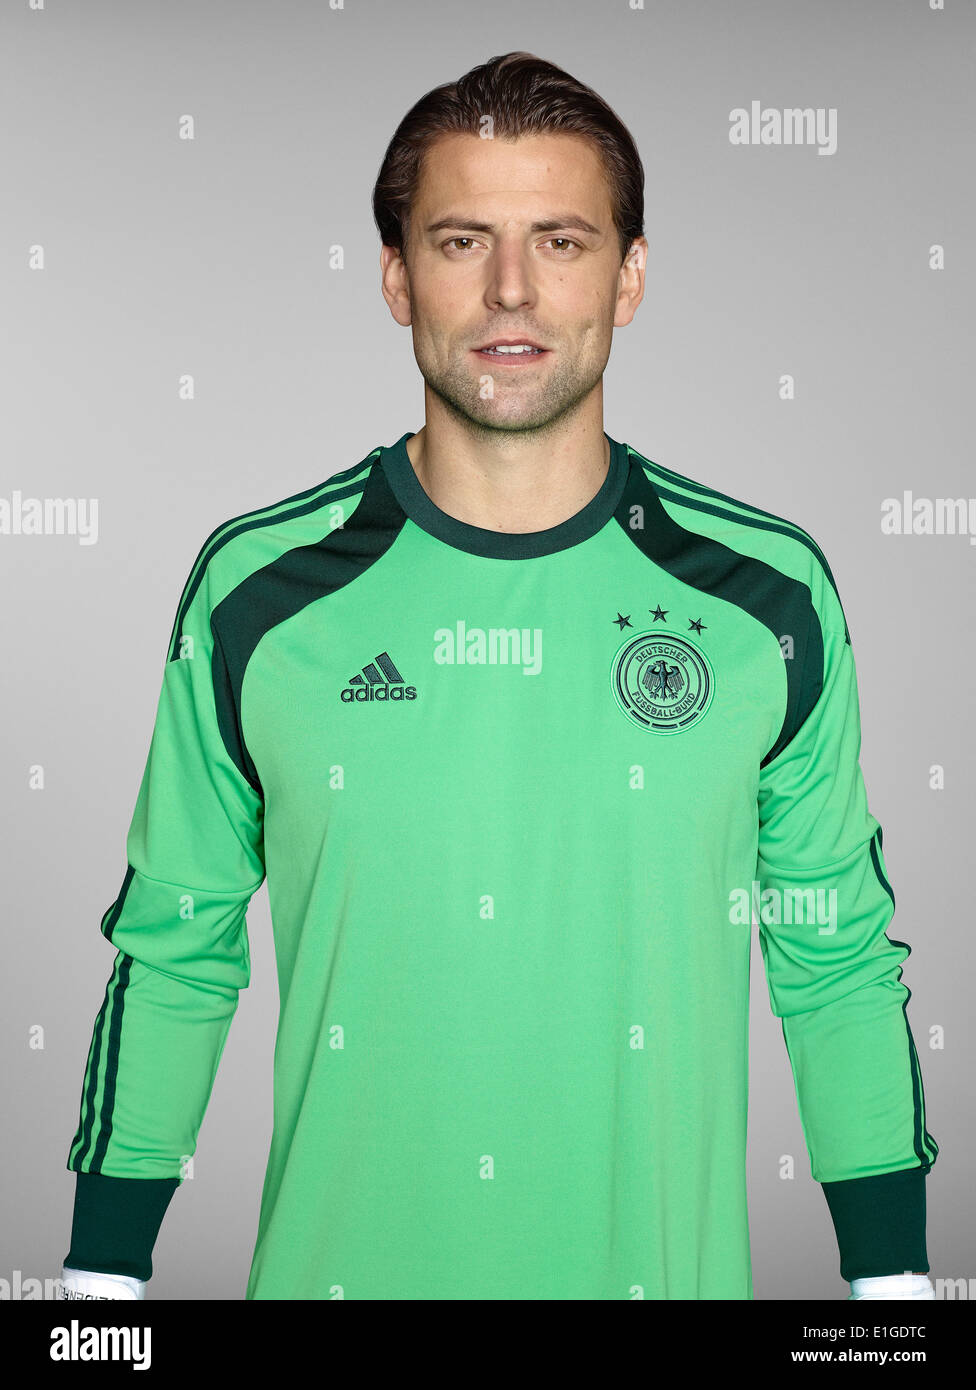 FIFA World Cup 2014 - photocall Team Germany, 24 May 2014 in Passeier, Italy: Roman Weidenfeller. Photo credit: Bongarts/Getty Images/German Football Association/dpa (editorial use only) - Stock Image